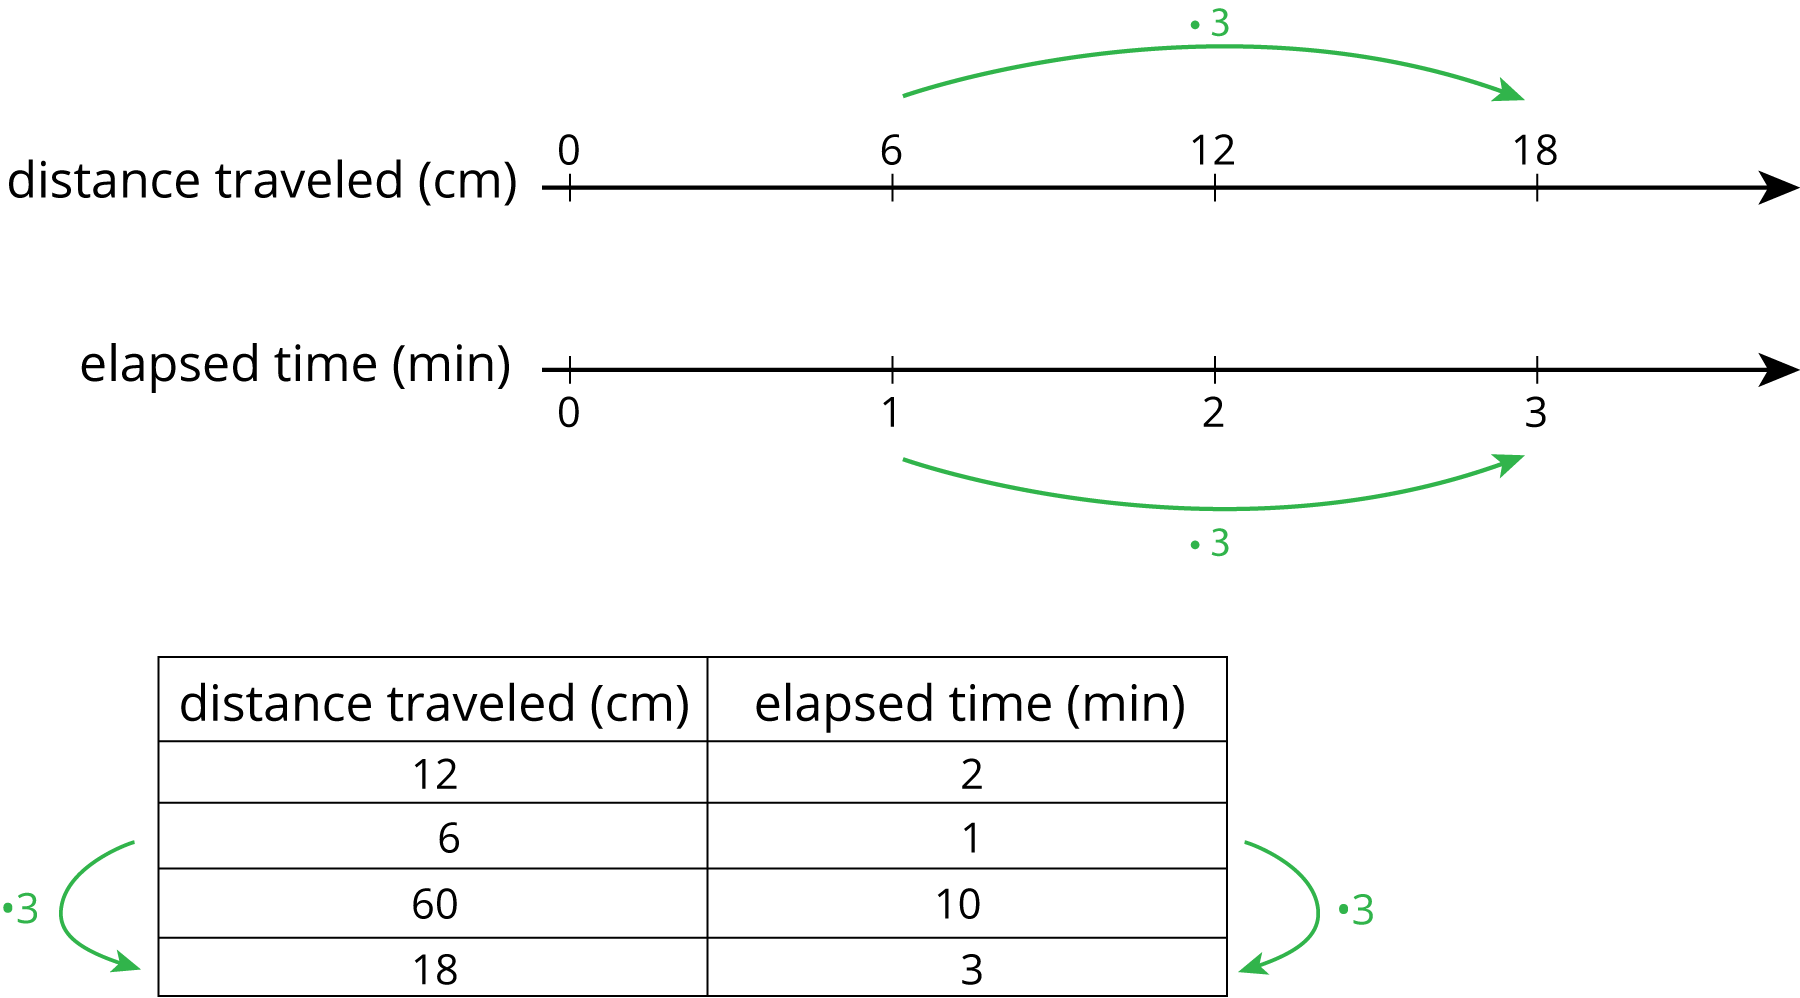 """A double number line with 4 evenly spaced tick marks. For """"distance traveled, in centimeters"""" the numbers 0, 6, 12, and 18 are indicated and an arrow labeled """"times 3"""" is drawn from 6 to 18 . For """"elapsed time, in minutes"""" the numbers 0, 1, 2, and 3 are indicated and an arrow labeled """"times 3"""" is drawn from 1 to 3. A 2-column table with 4 rows of data. The first column is labeled """"distance traveled, in centimeters"""" and the second column is labeled """"elapsed time, in minutes."""" Row 1: 12, 2; Row 2: 6, 1; Row 3: 60, 10; Row 4: 18, 3."""